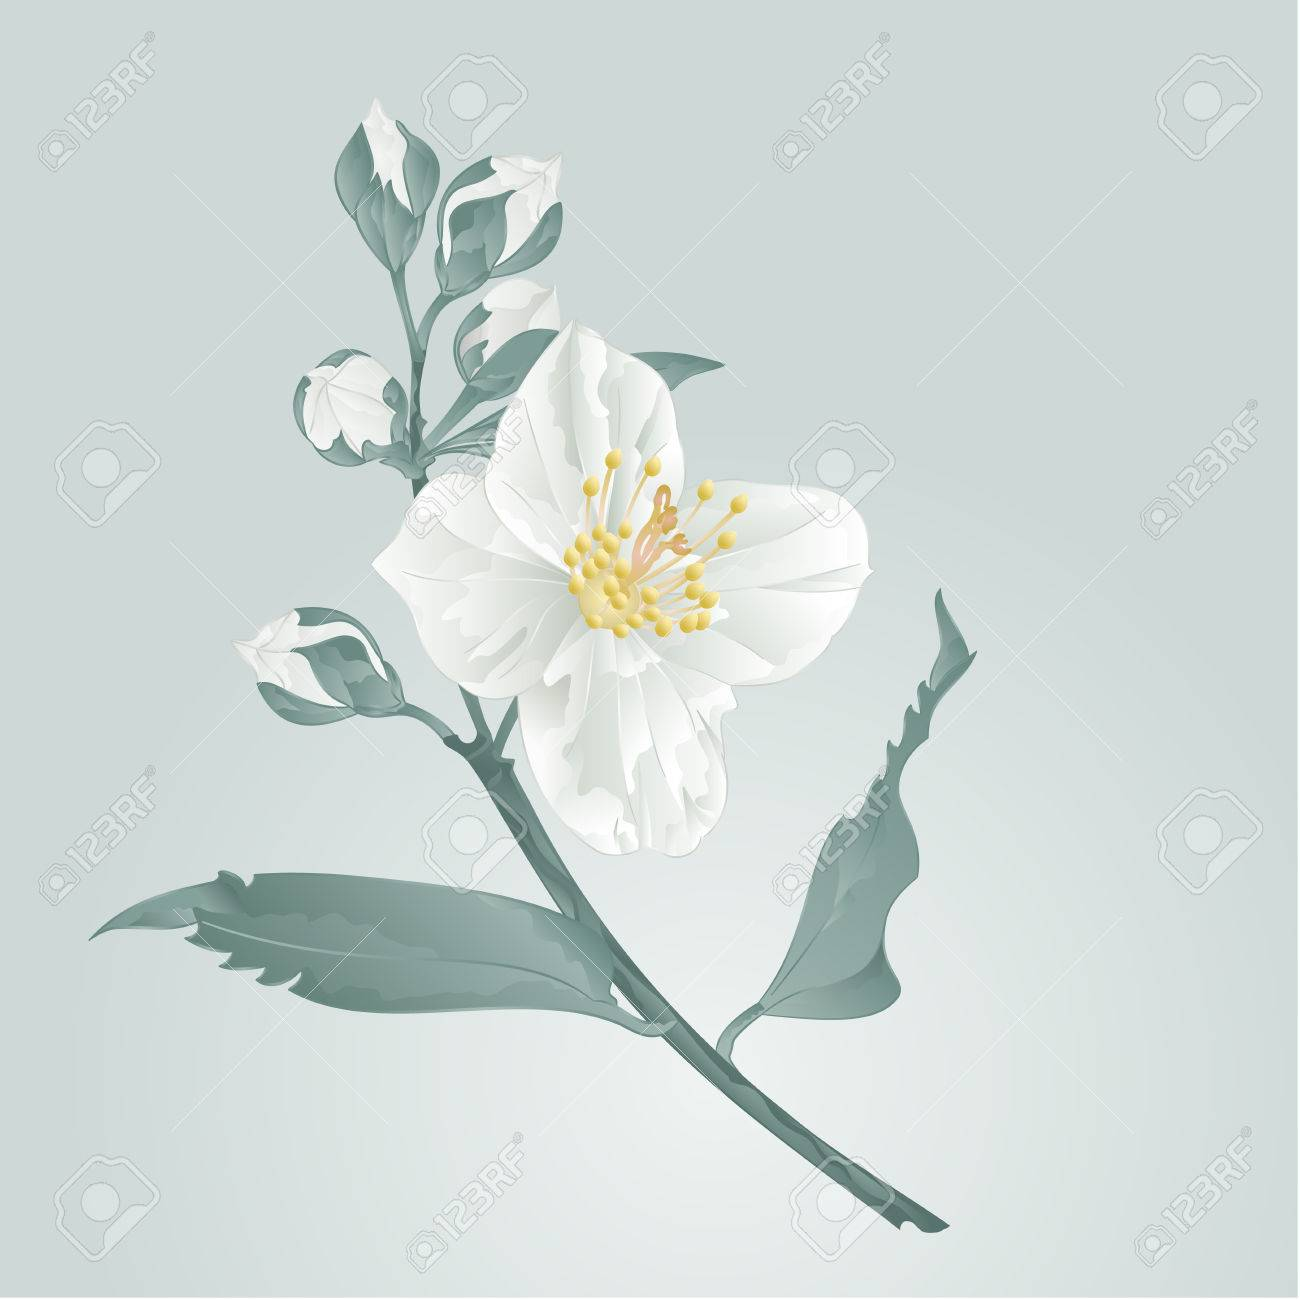 Flower Twig Jasmine Flower And Buds Vector Illustration Royalty Free